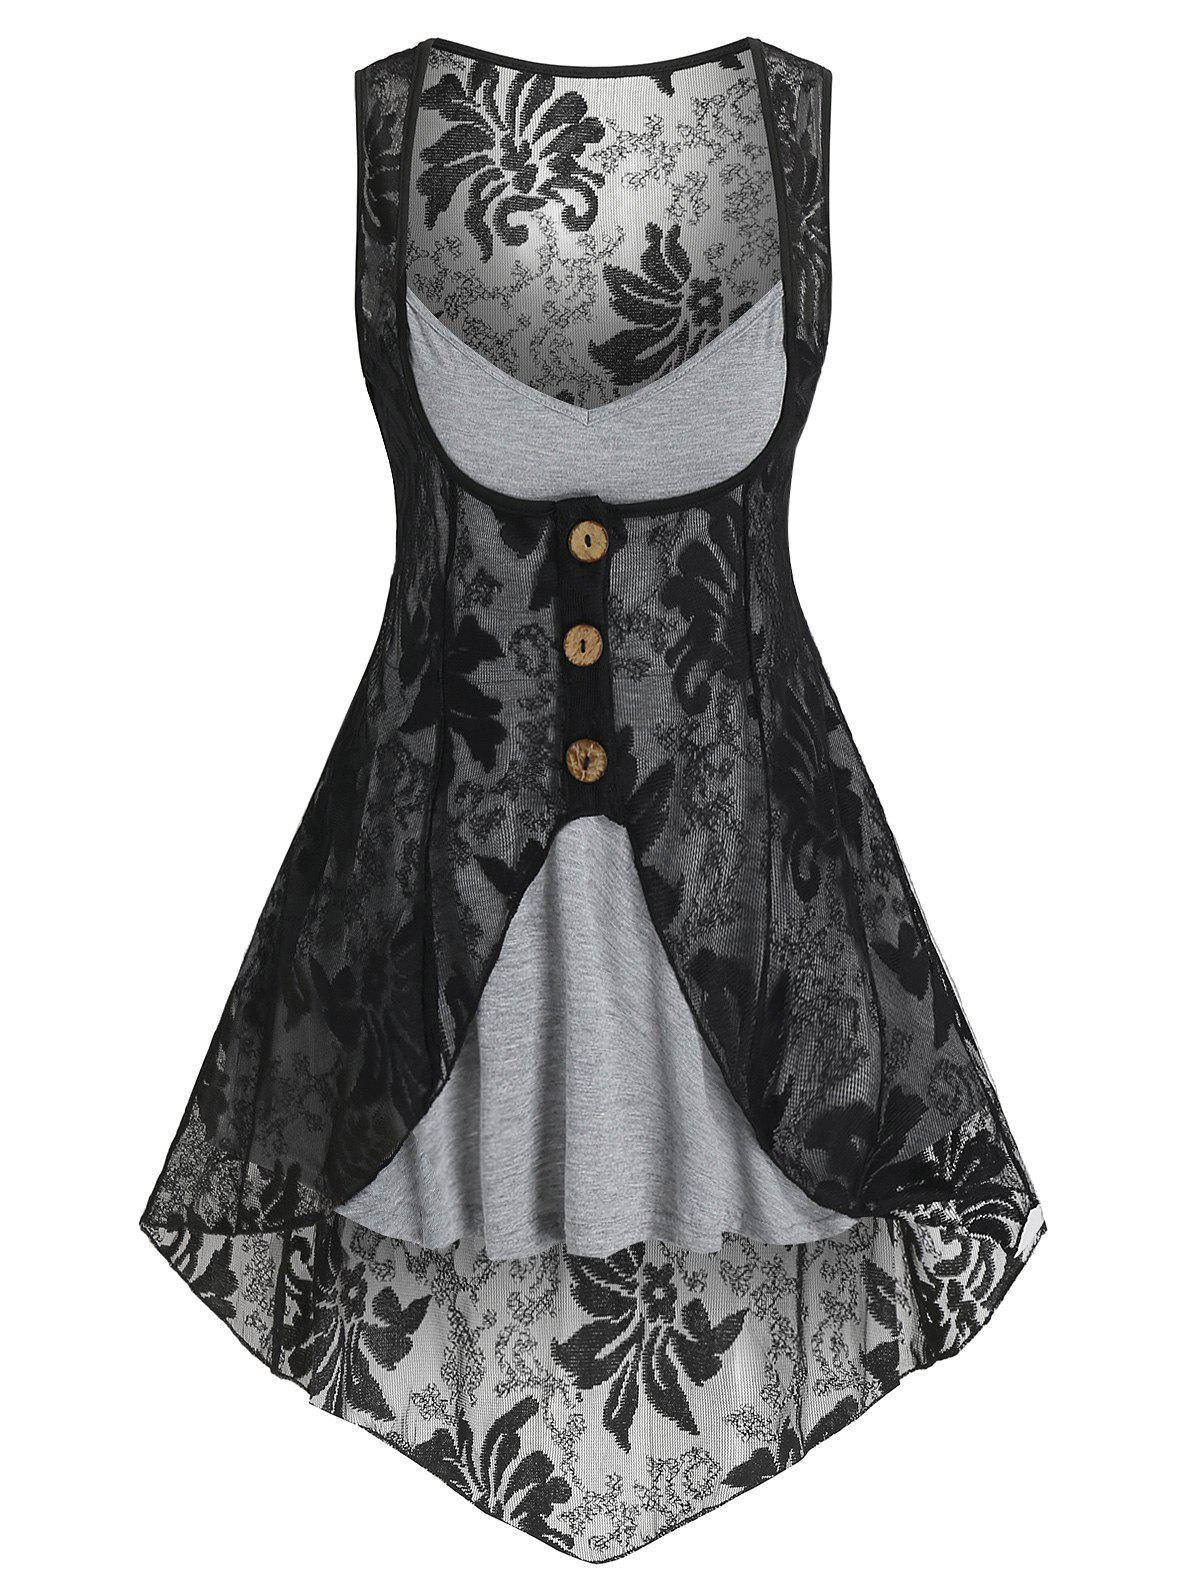 Heathered Flare Cami Top and Flower Lace Vest - LIGHT GRAY M